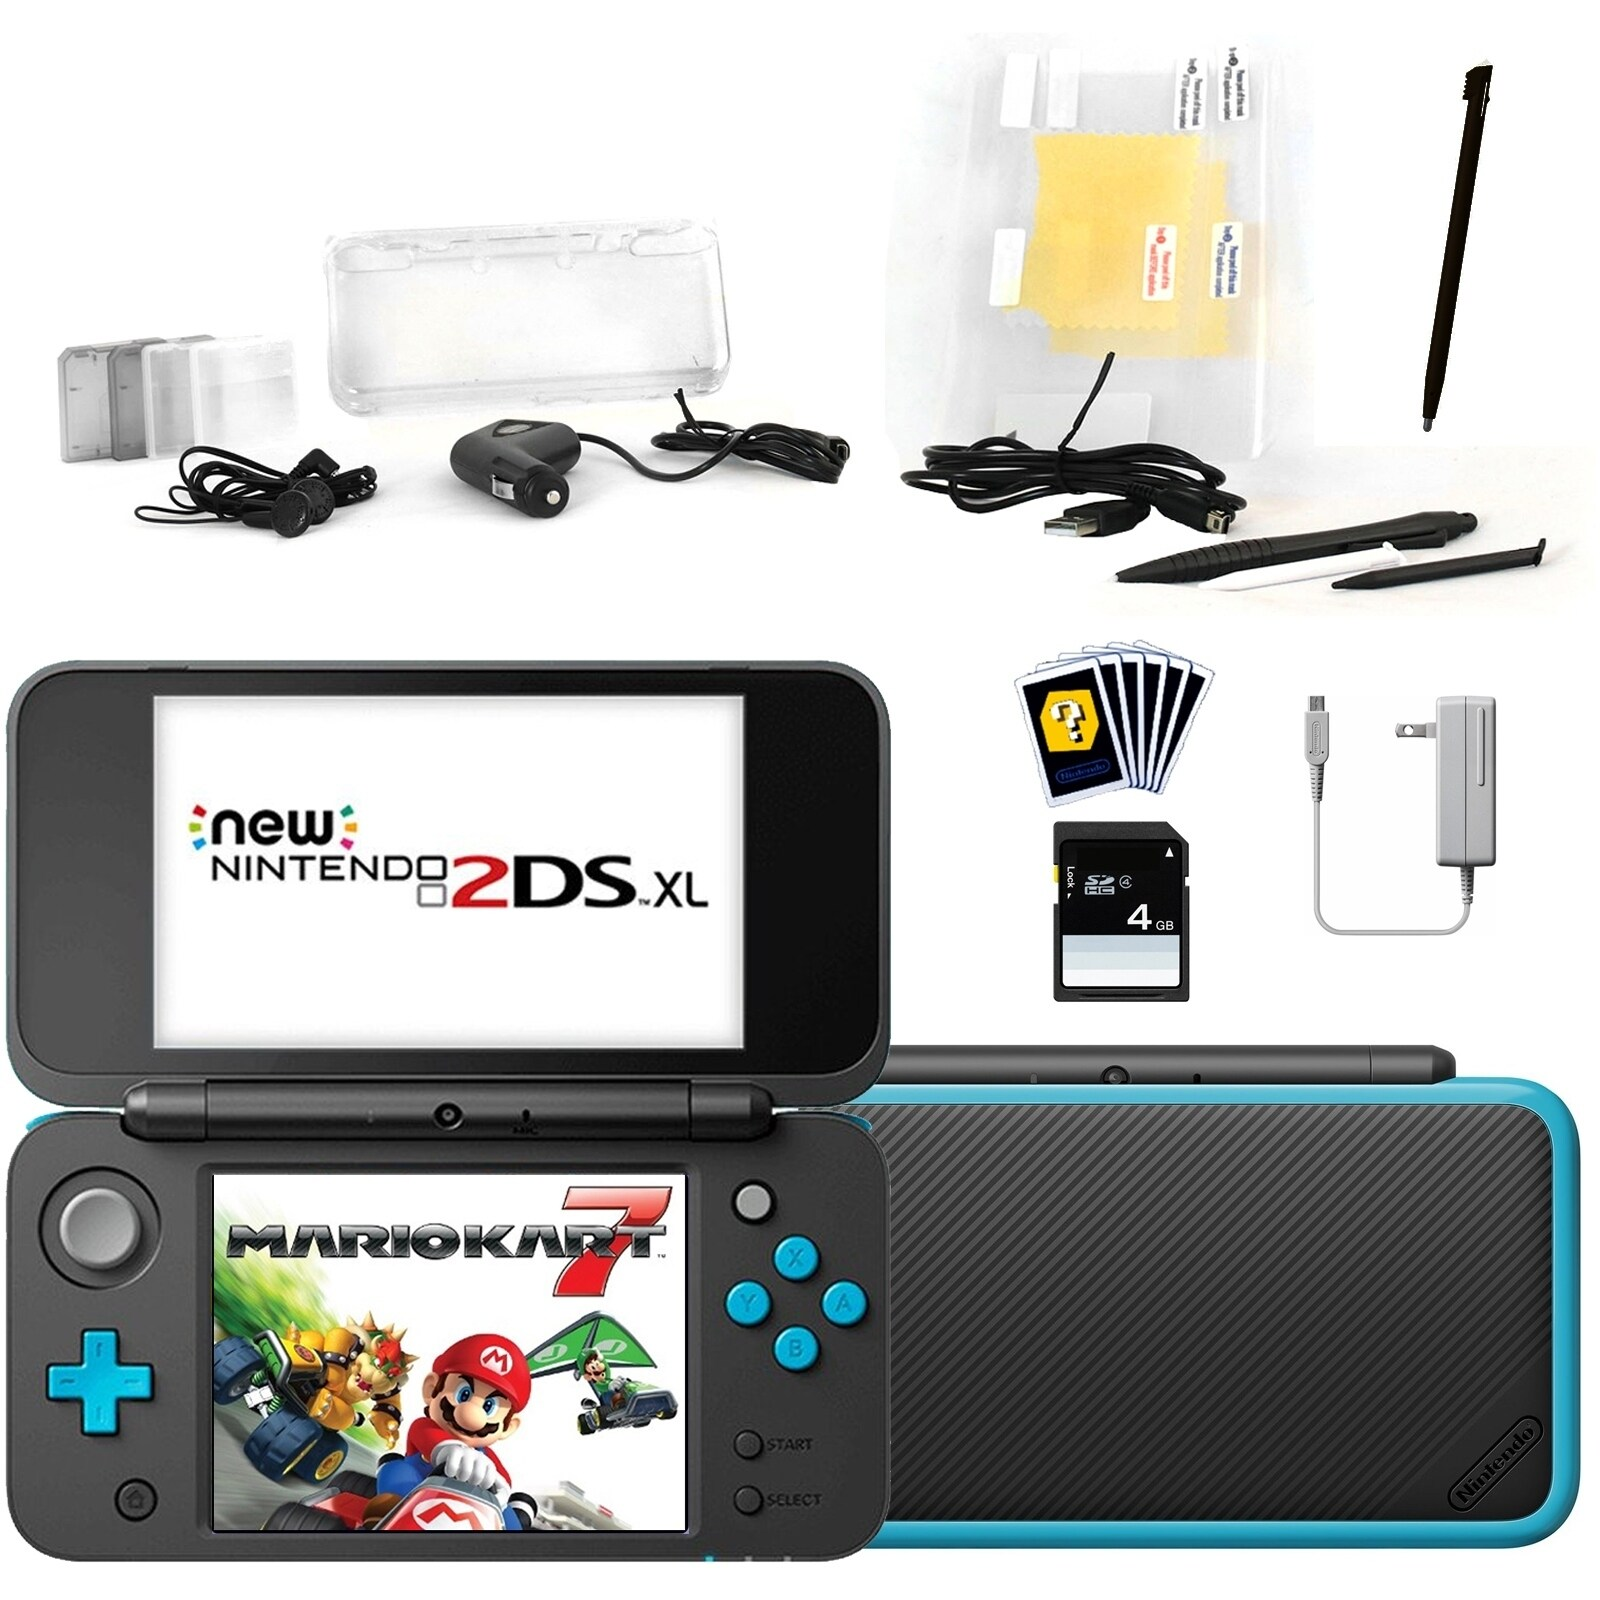 Shop New Nintendo 2DSXL with Mario Kart 7 in Black with Accessories Kit -  Free Shipping Today - Overstock.com - 25481661